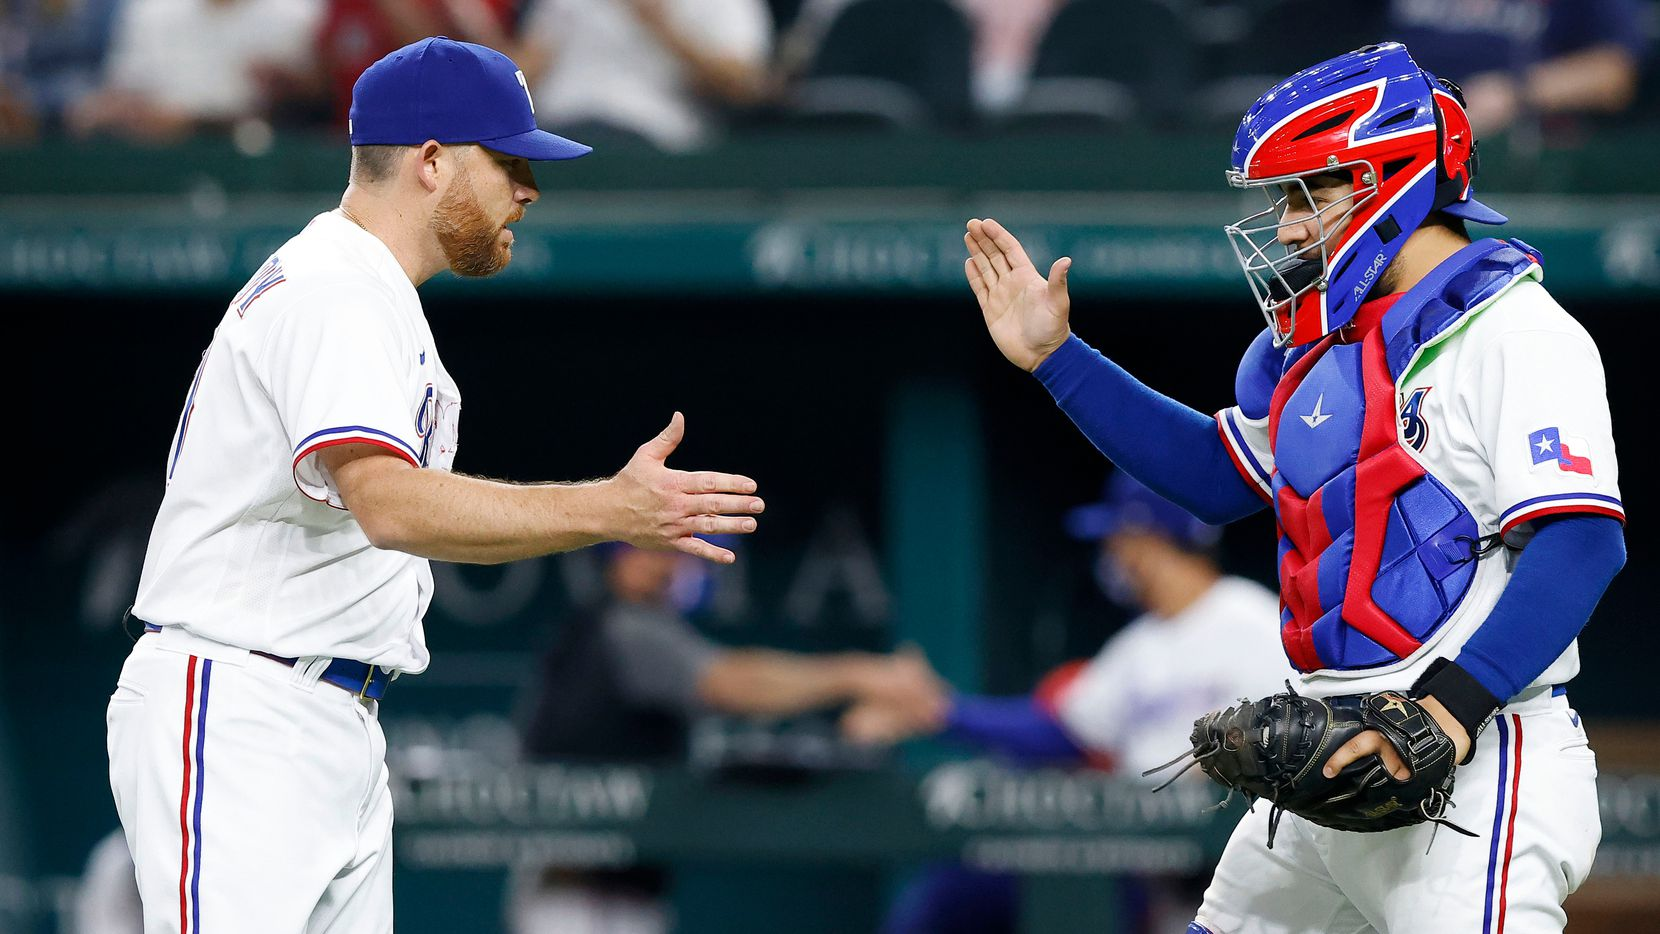 Texas Rangers relief pitcher Ian Kennedy (31) is congratulated by catcher Jose Trevino (23) after striking out the final Boston Red Sox batter in the ninth inning at Globe Life Field in Arlington, Texas, Thursday, April 29, 2021. (Tom Fox/The Dallas Morning News)